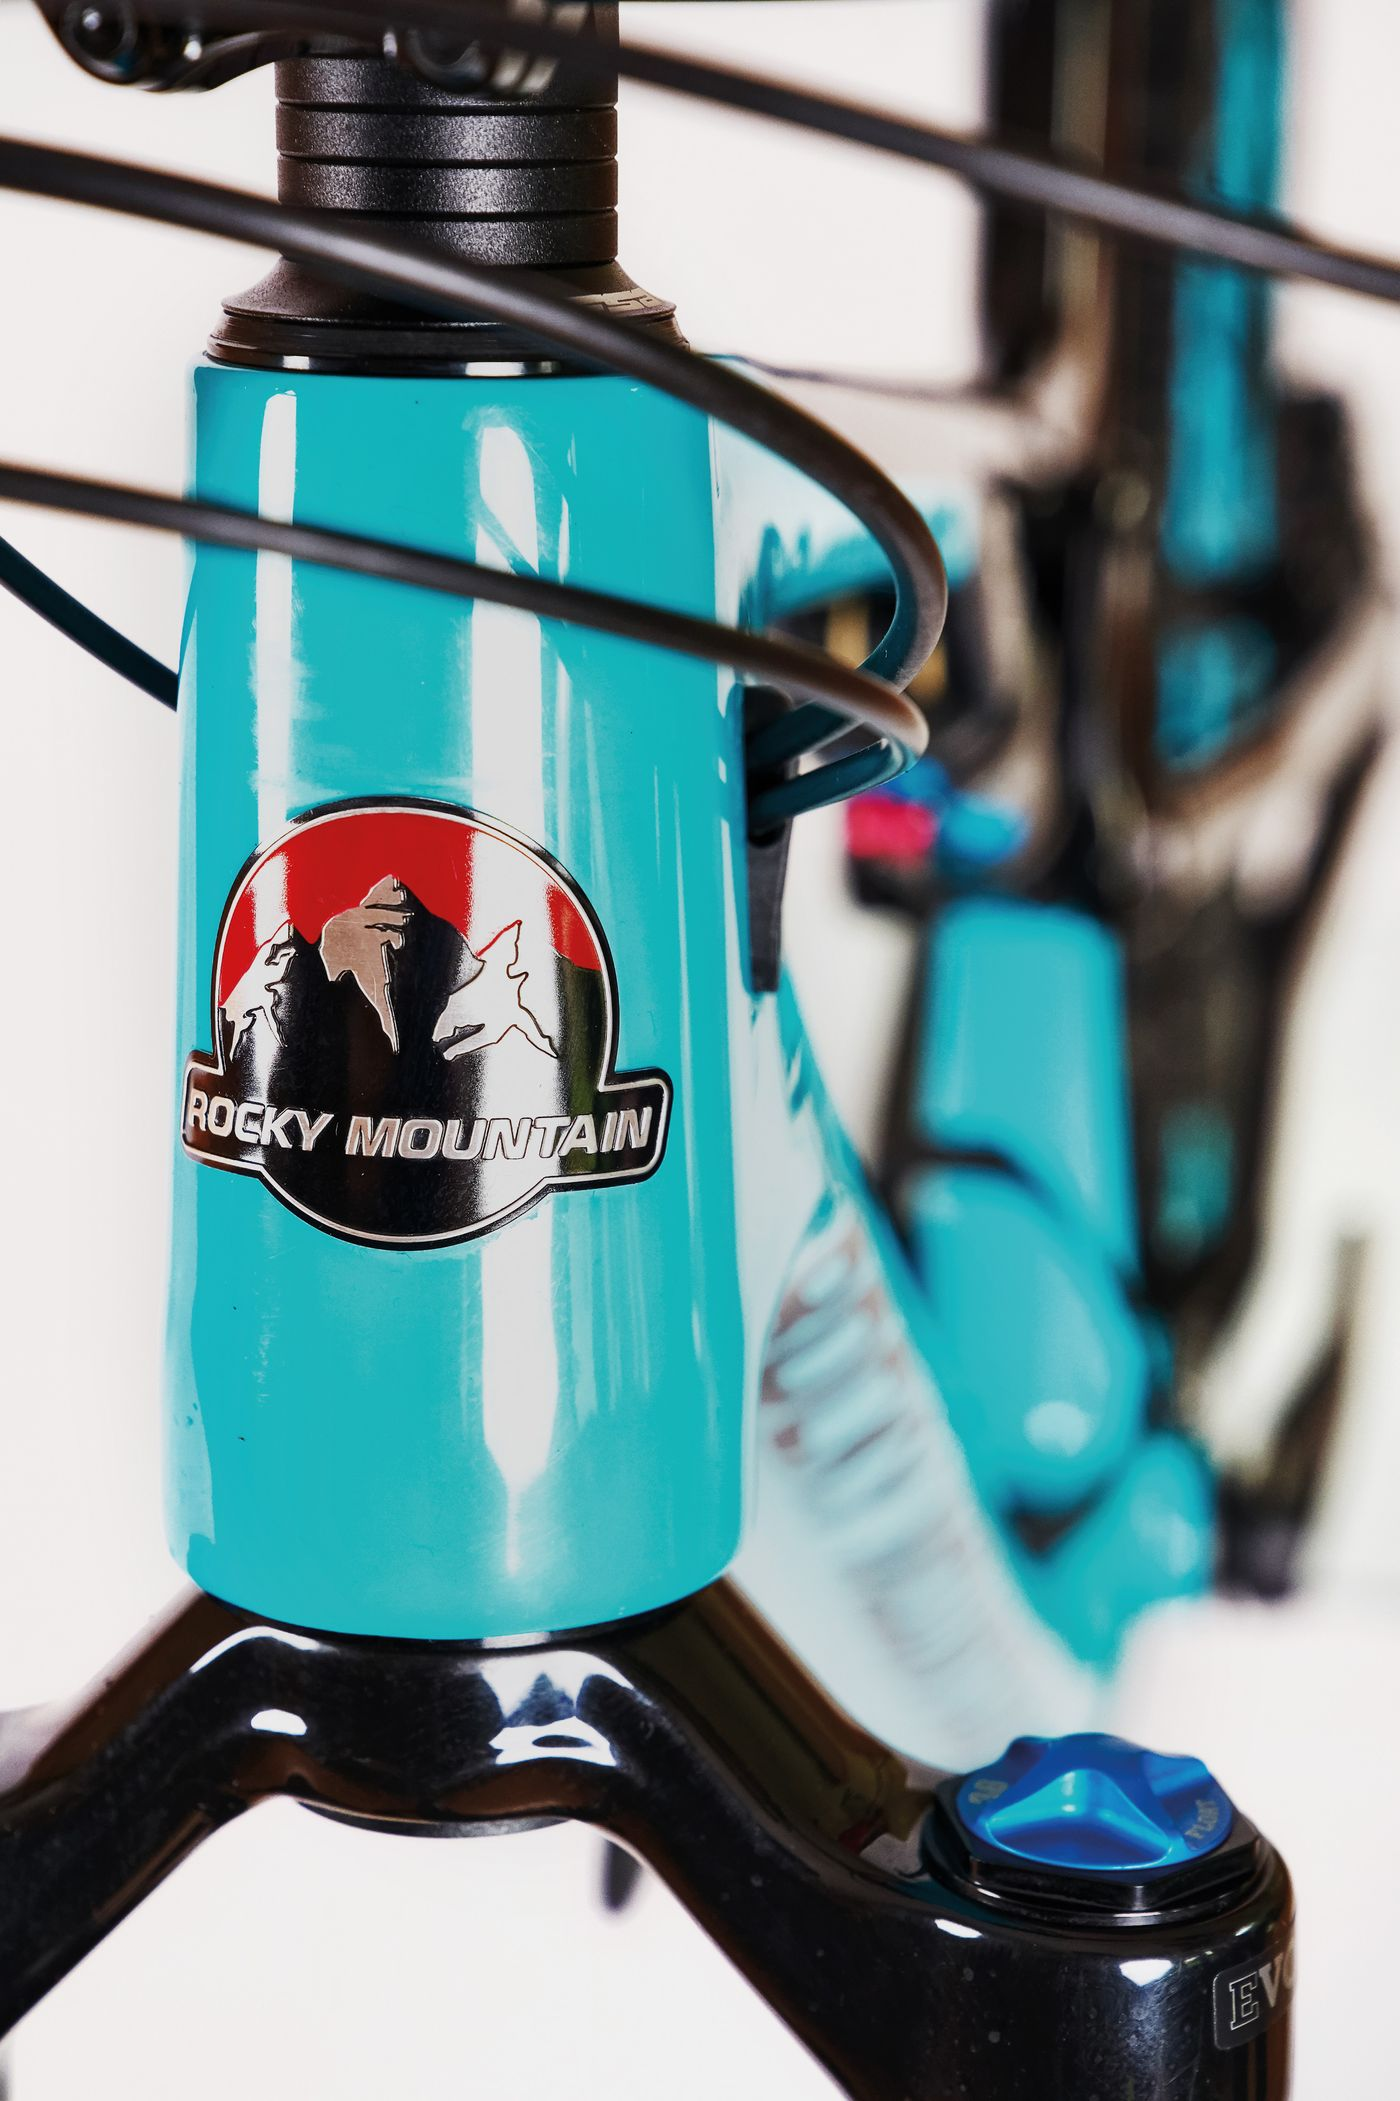 Rocky Mountain Thunderbolt Carbon 90 BC Edition - Steuerrohr Logo